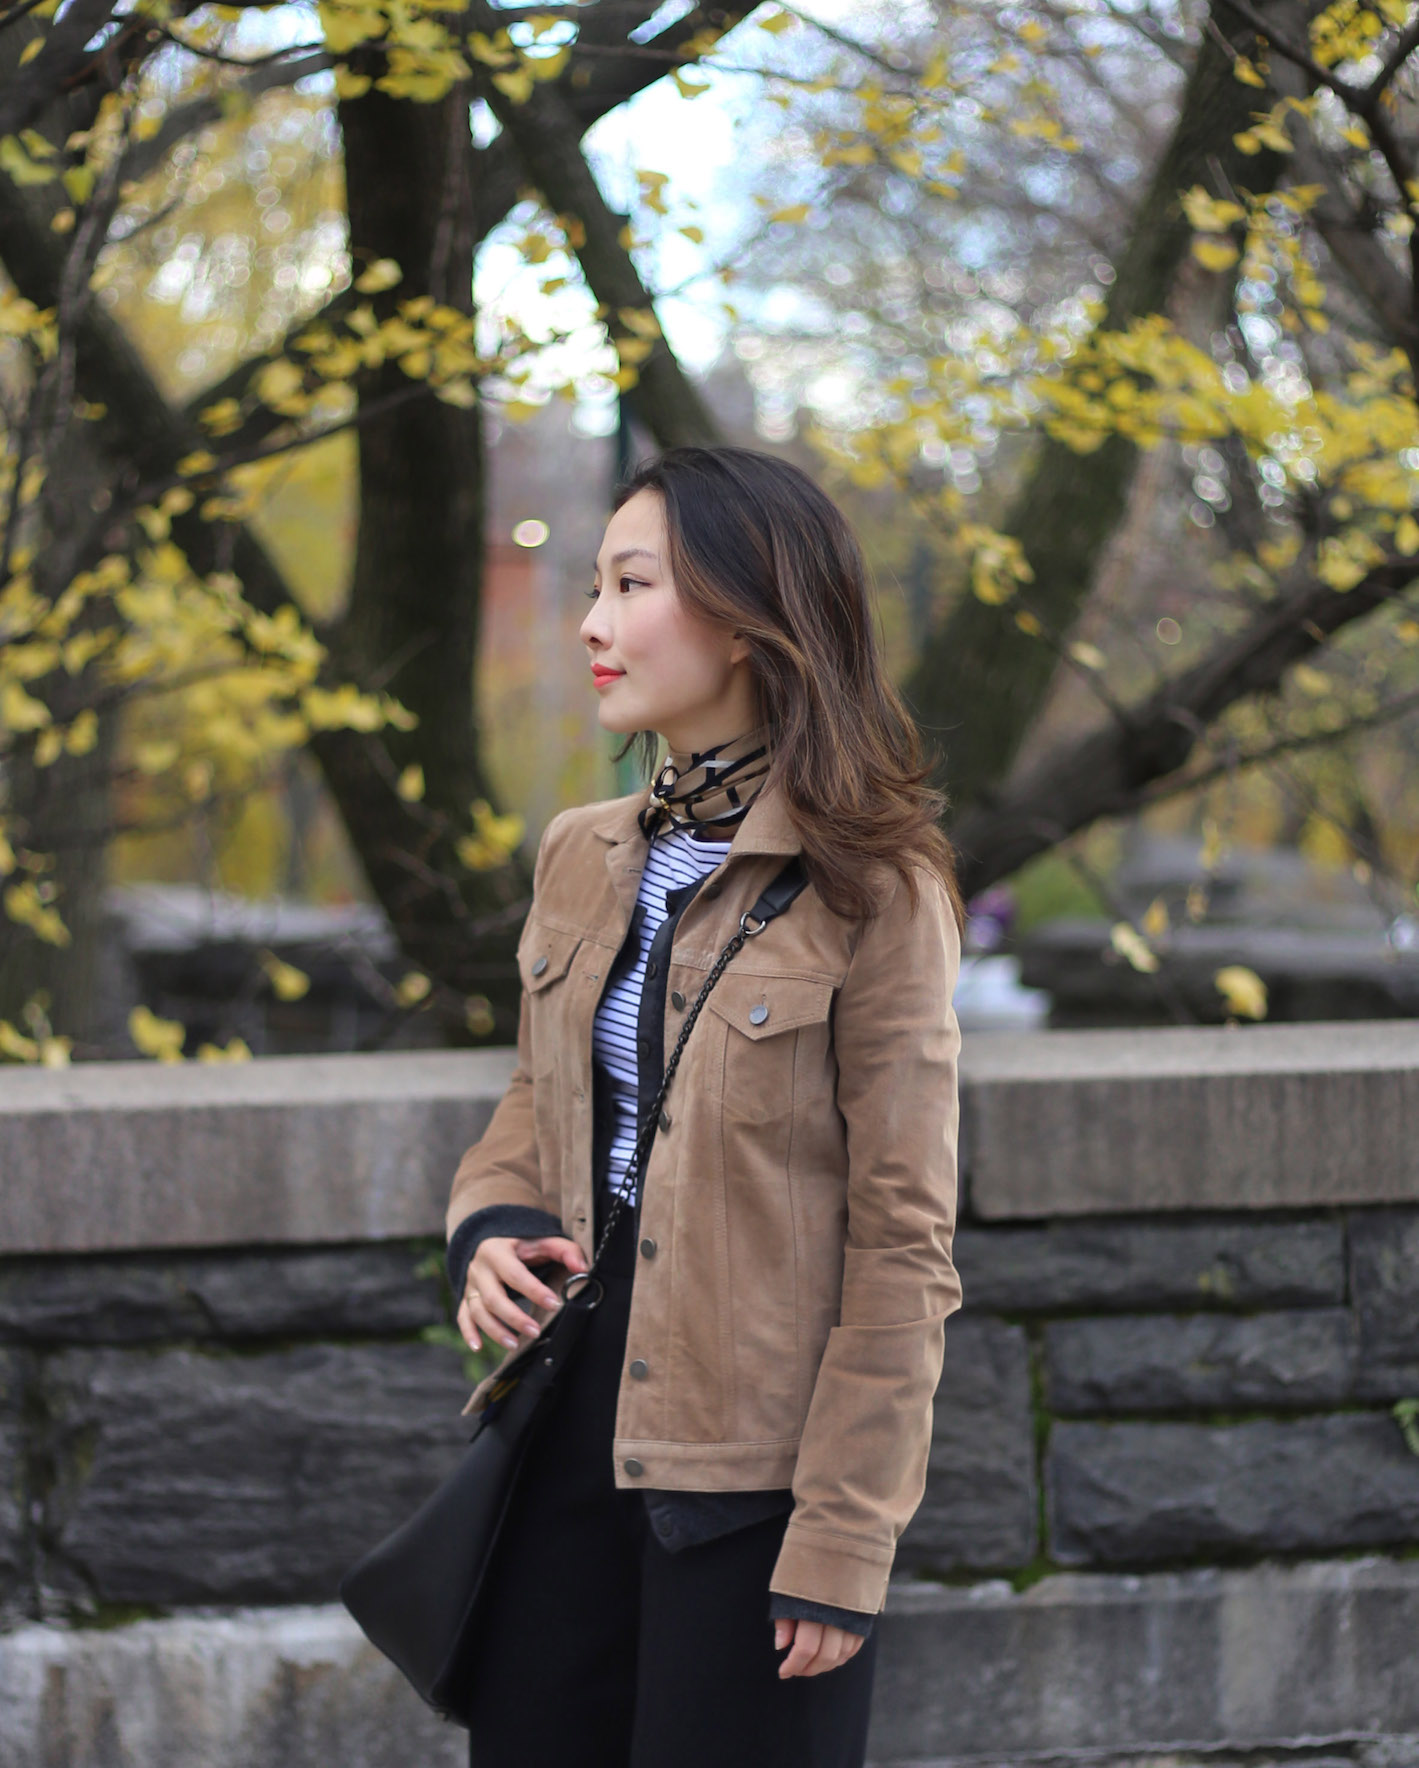 tan suede leather jacket outfit.JPG